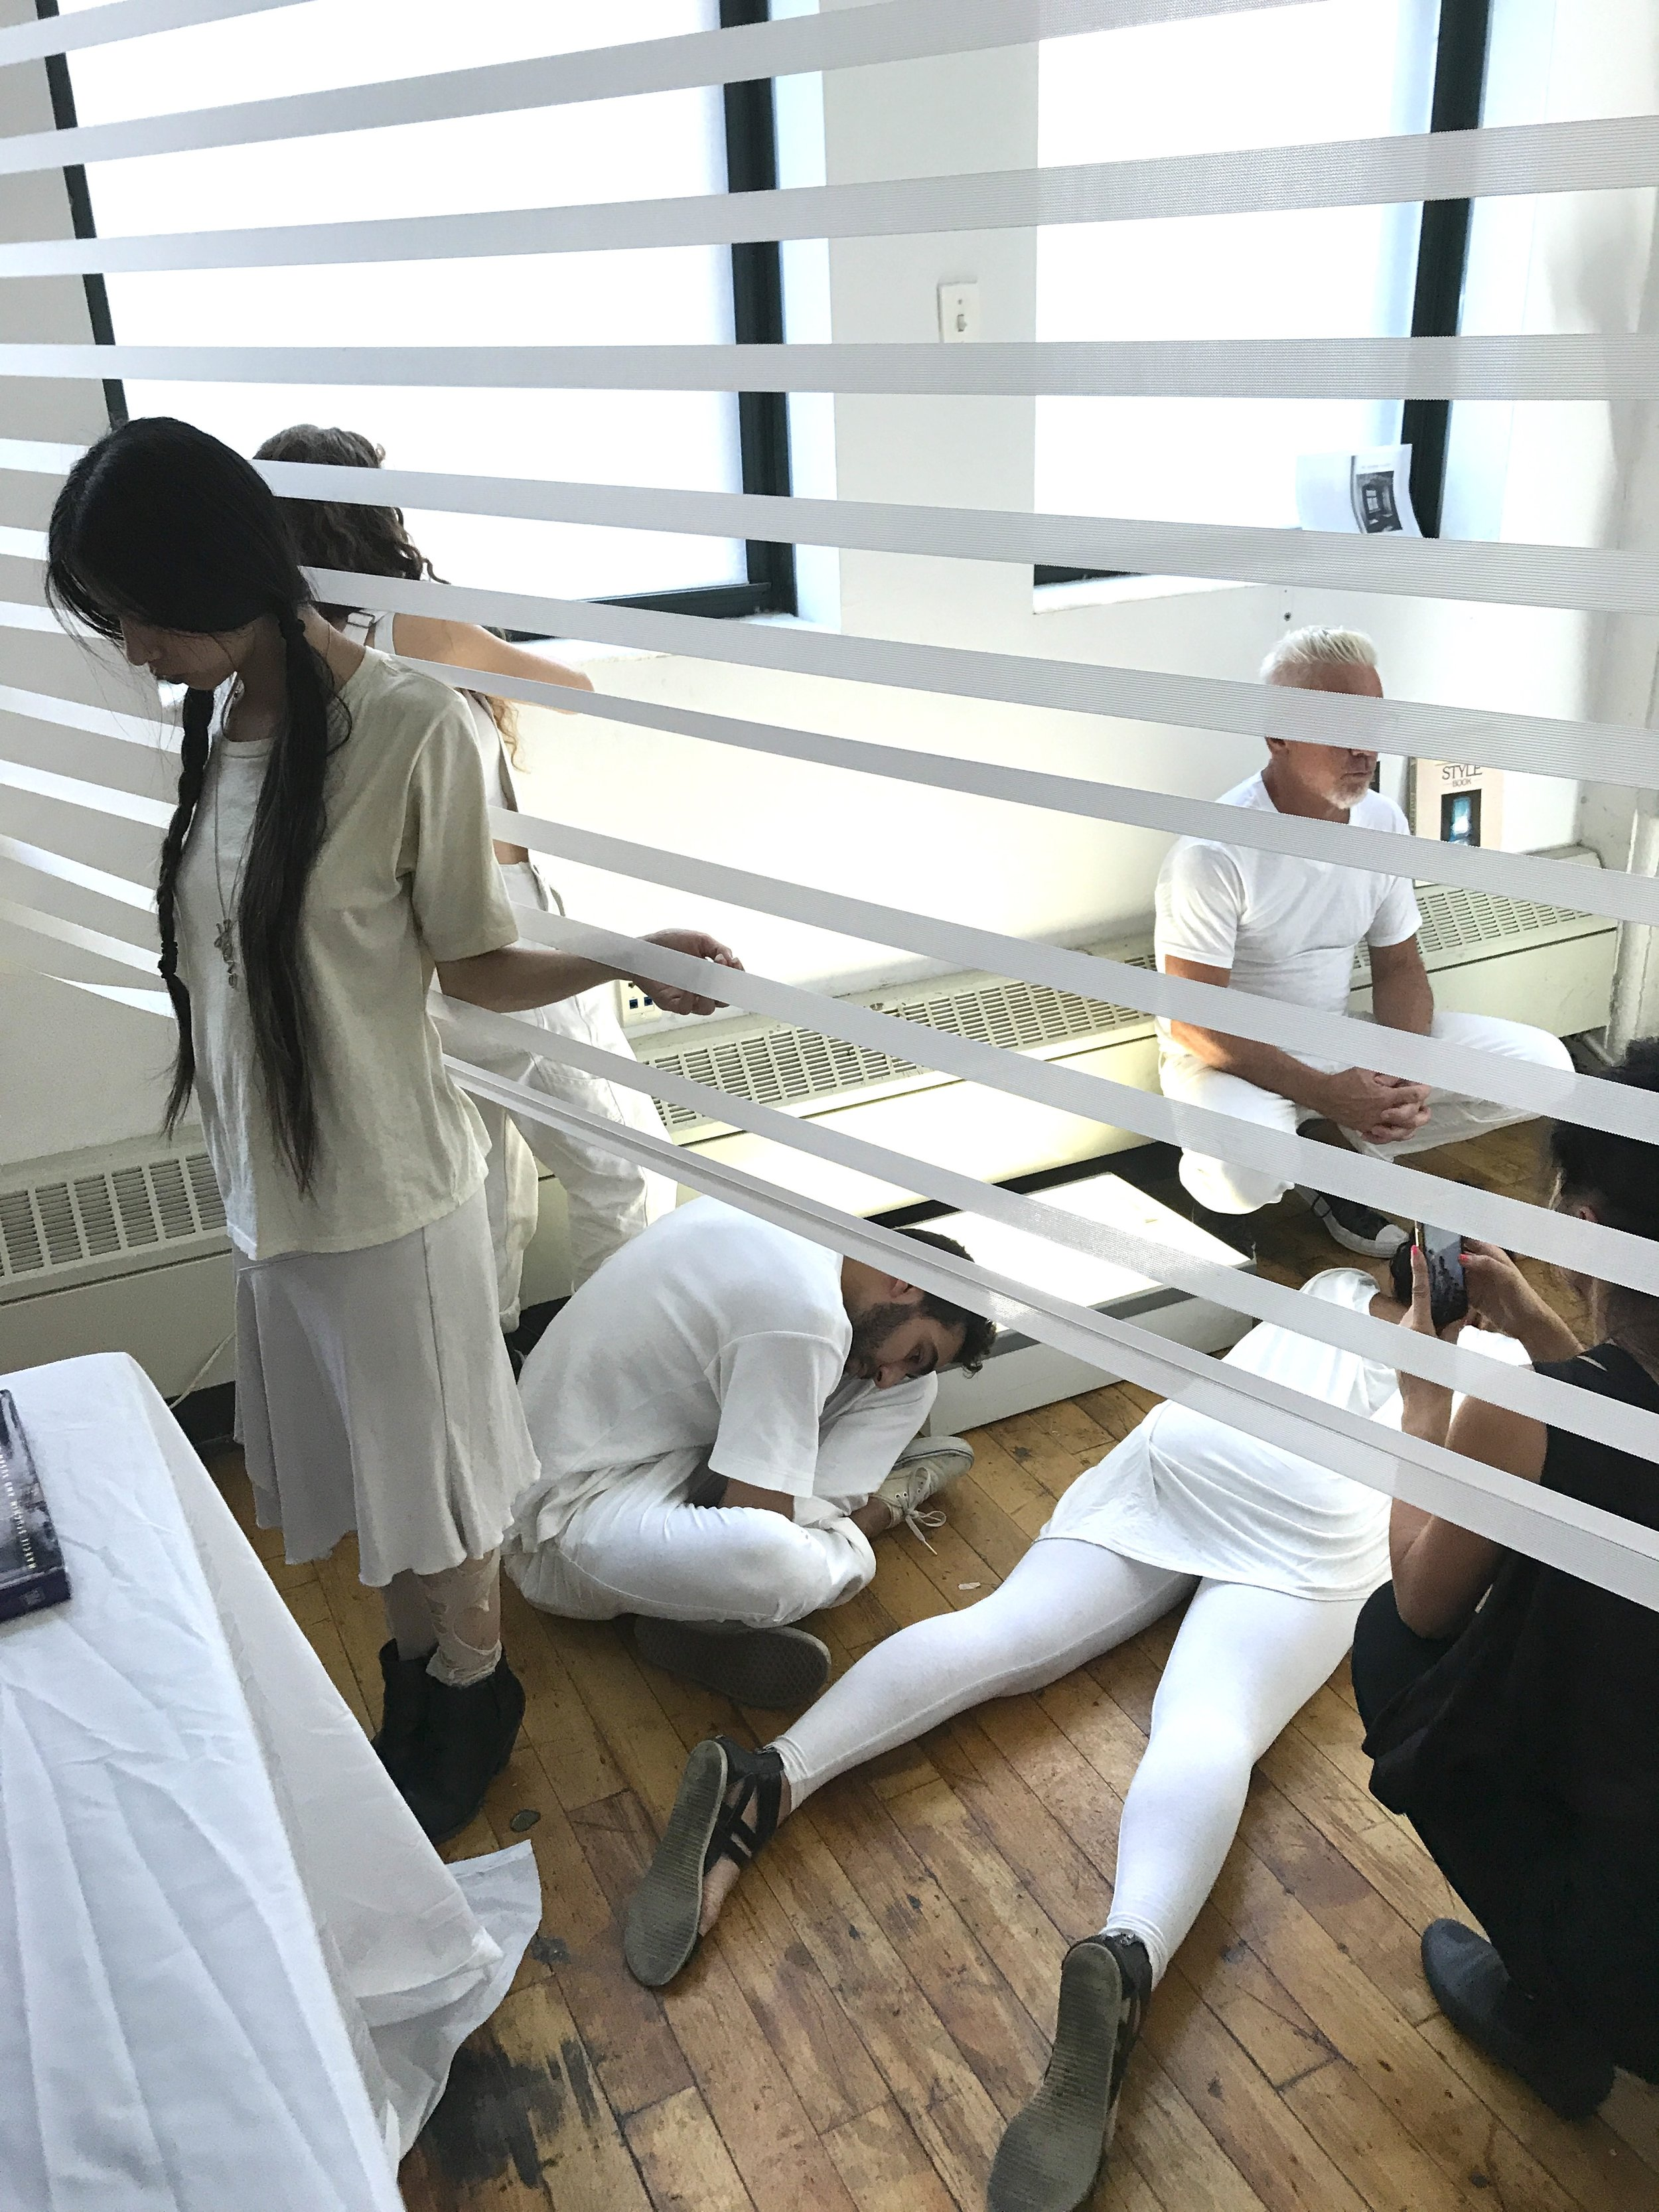 Henna-Riikka Halonen was Triangle Arts Association's and FCINY's artist-in-residence in June-August 2017. Her residency concluded in a day-long performative installation  Pinch, Fold, Cut, Line that Halonen choreographed in collaboration with Cheryl Wing-Zi Wong.